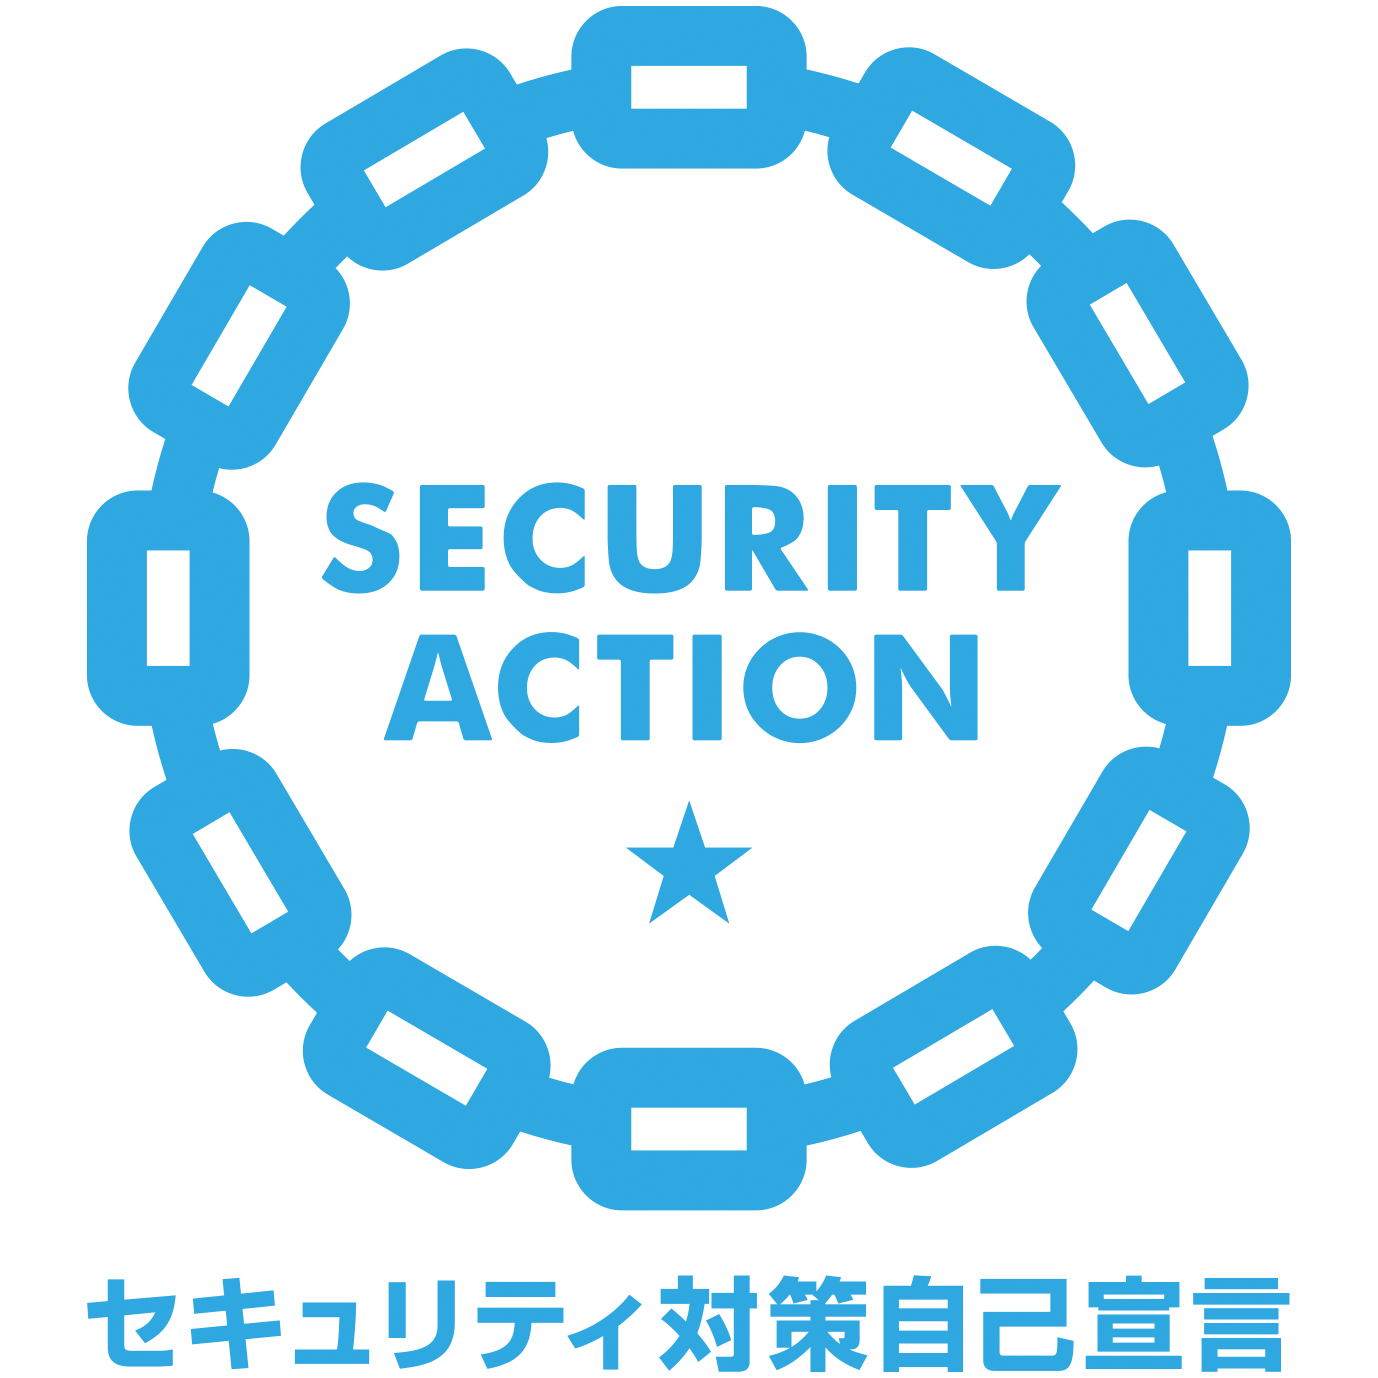 「SECURITY ACTION」一つ星